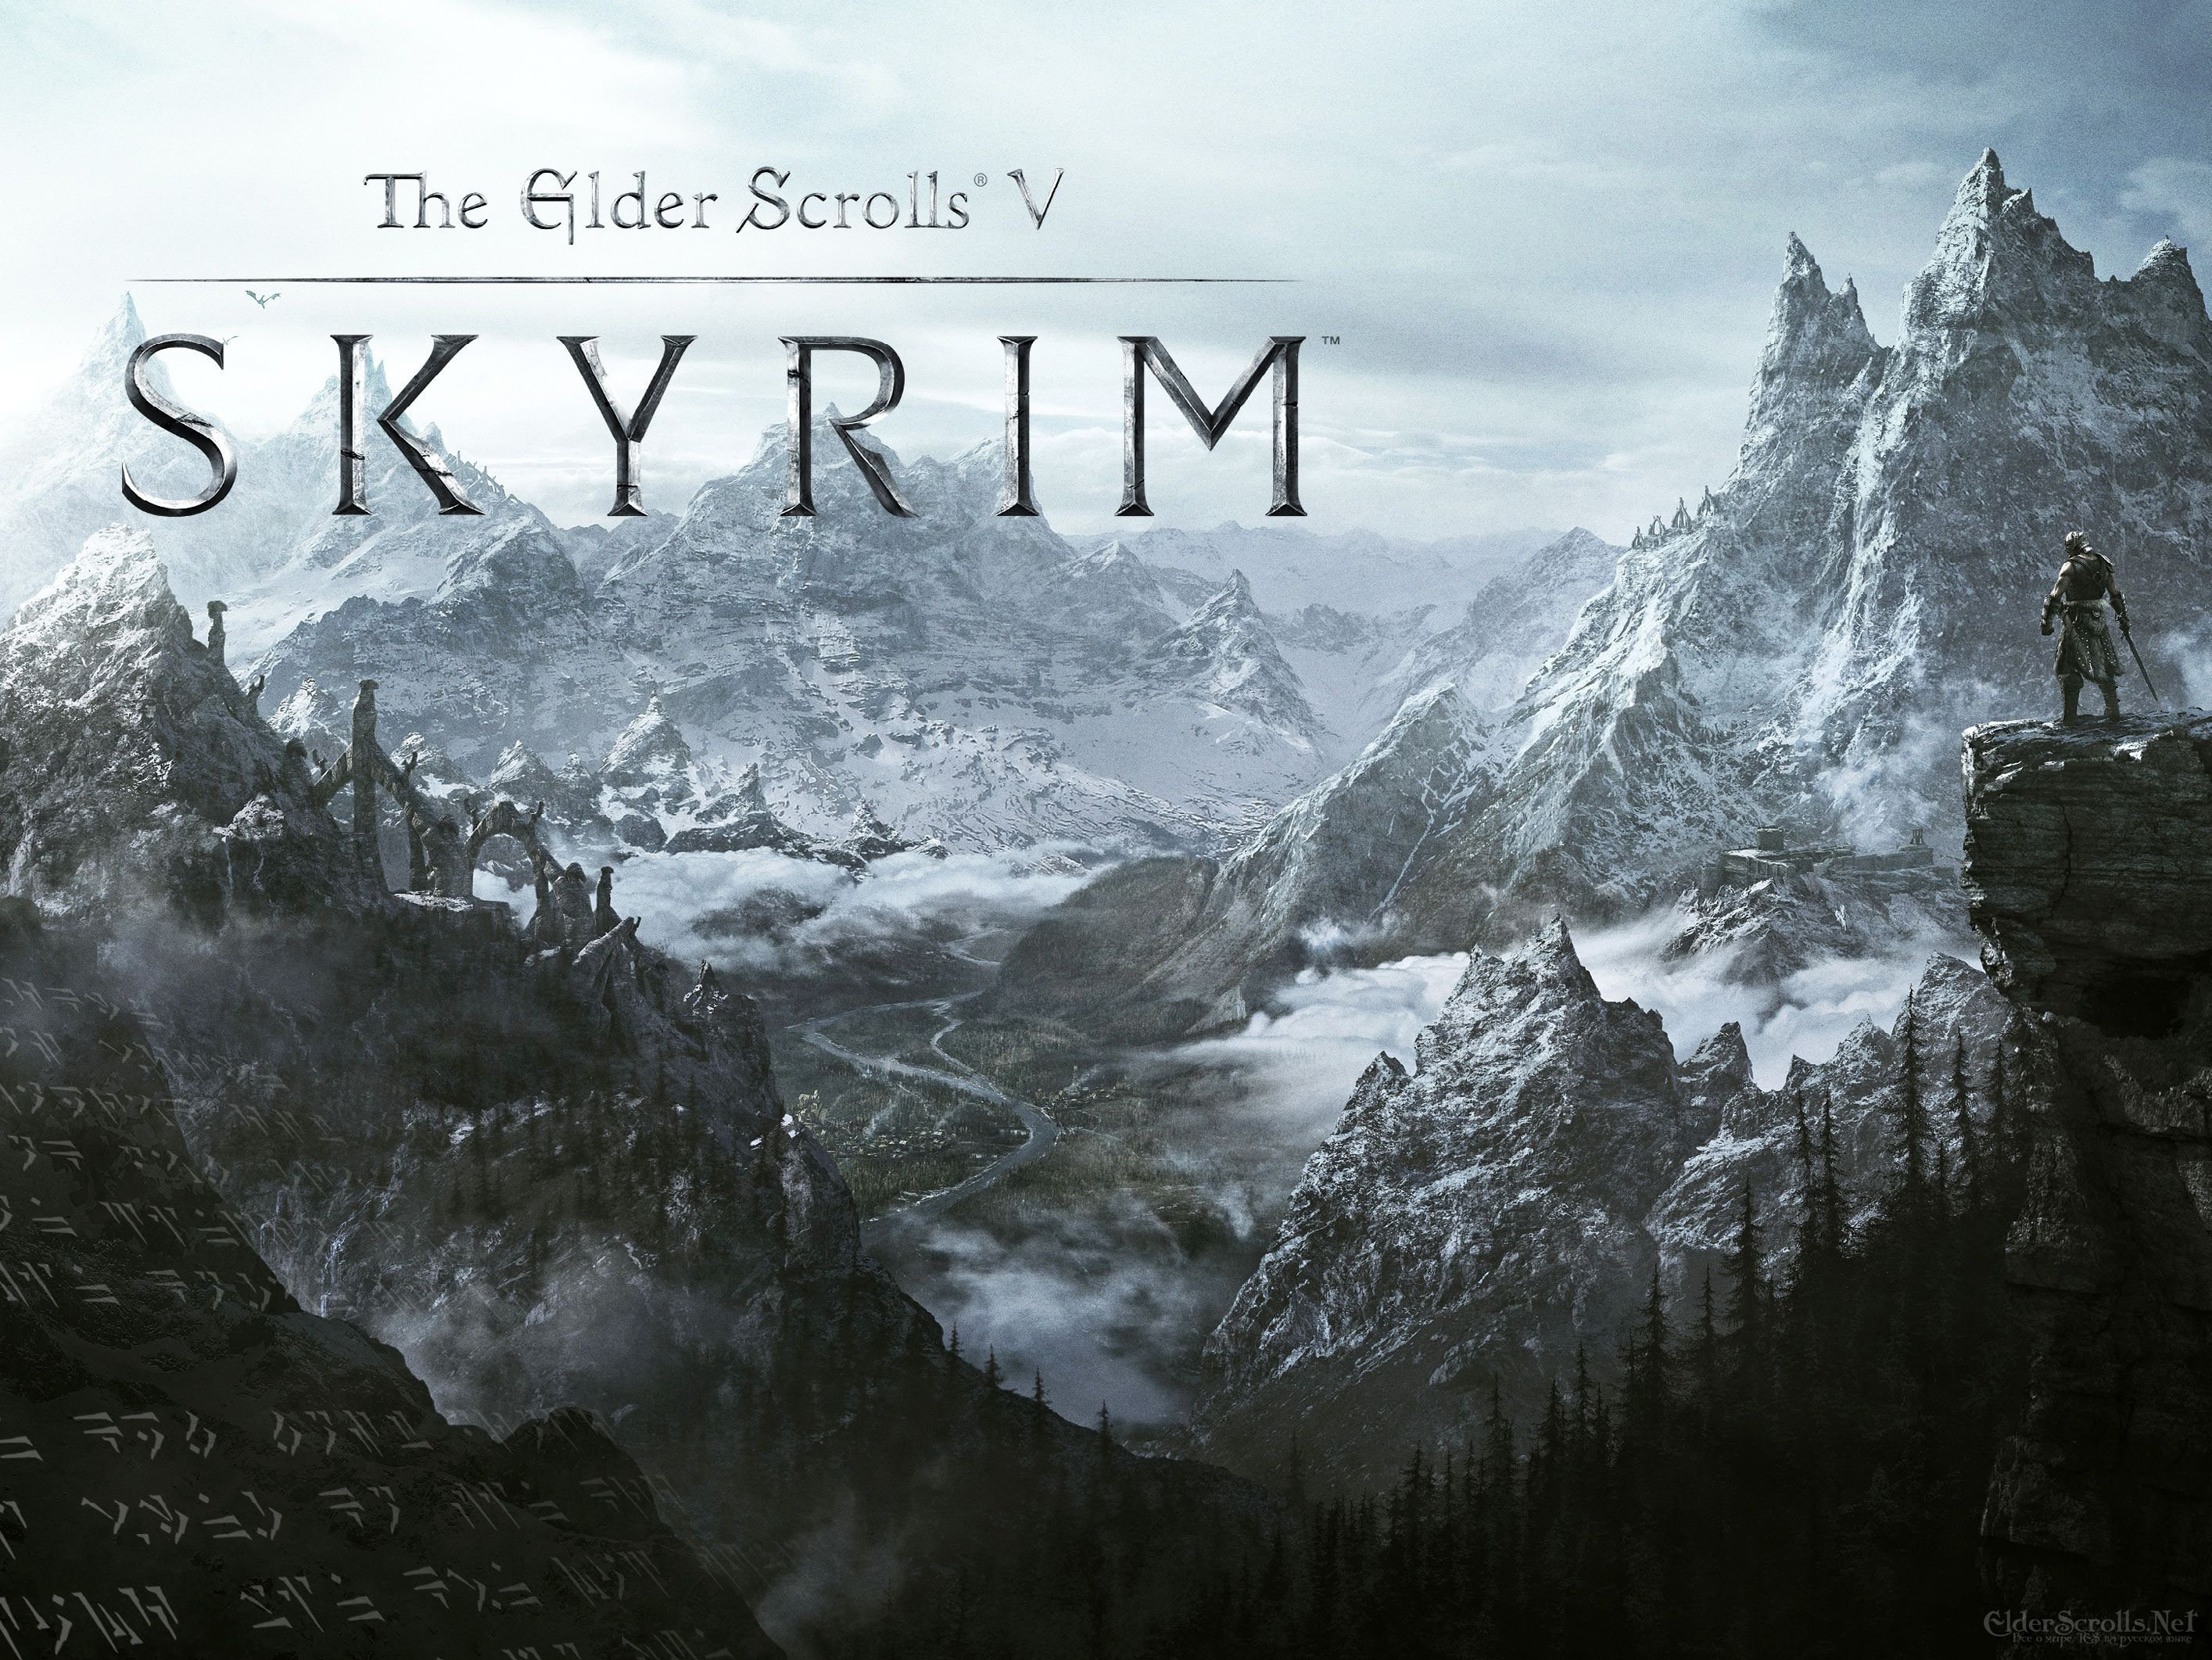 The Elder Scrolls V: Skyrim wallpaper mountains